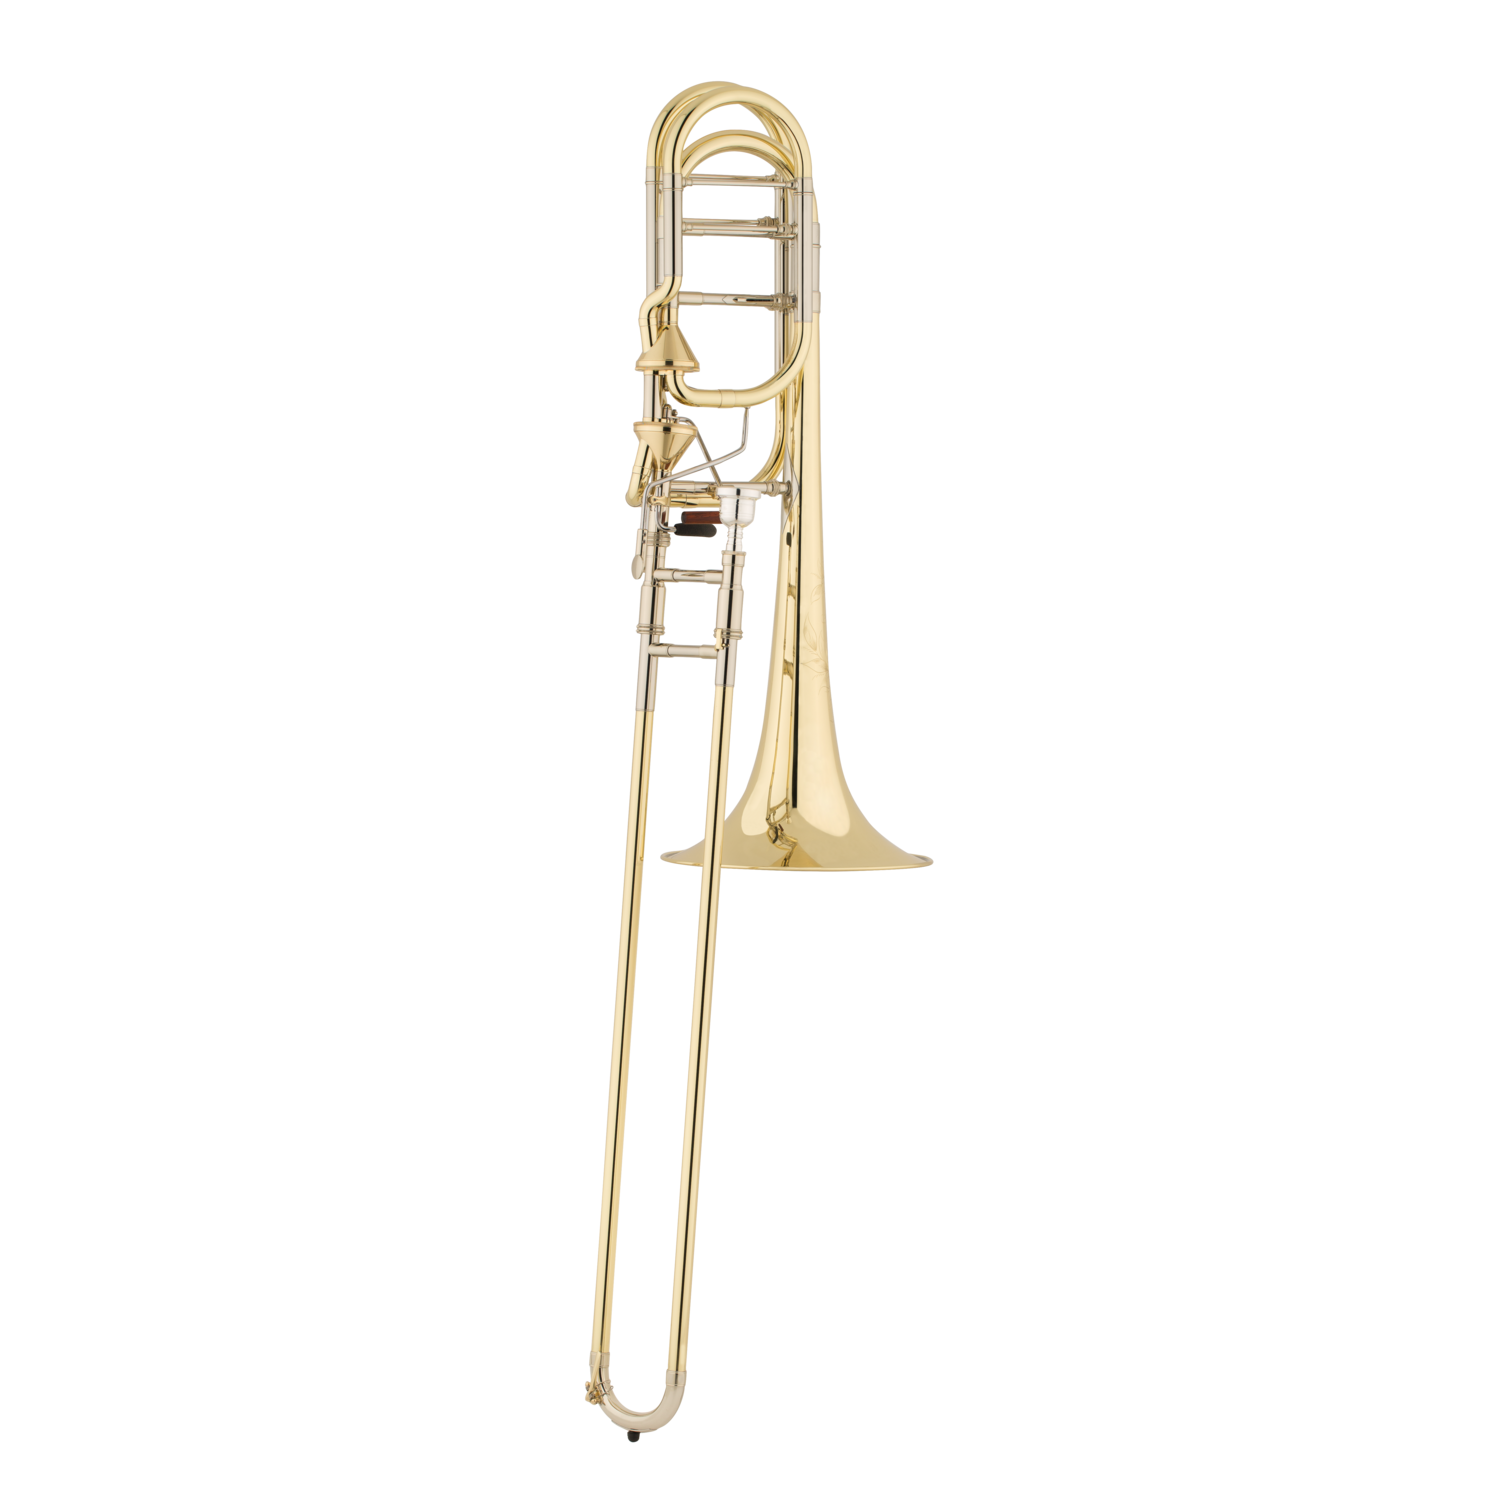 S.E. Shires - George Curran Artist Model Bass Trombone with Axial Flow F/Gb Attachment-Trombone-S.E. Shires-Music Elements